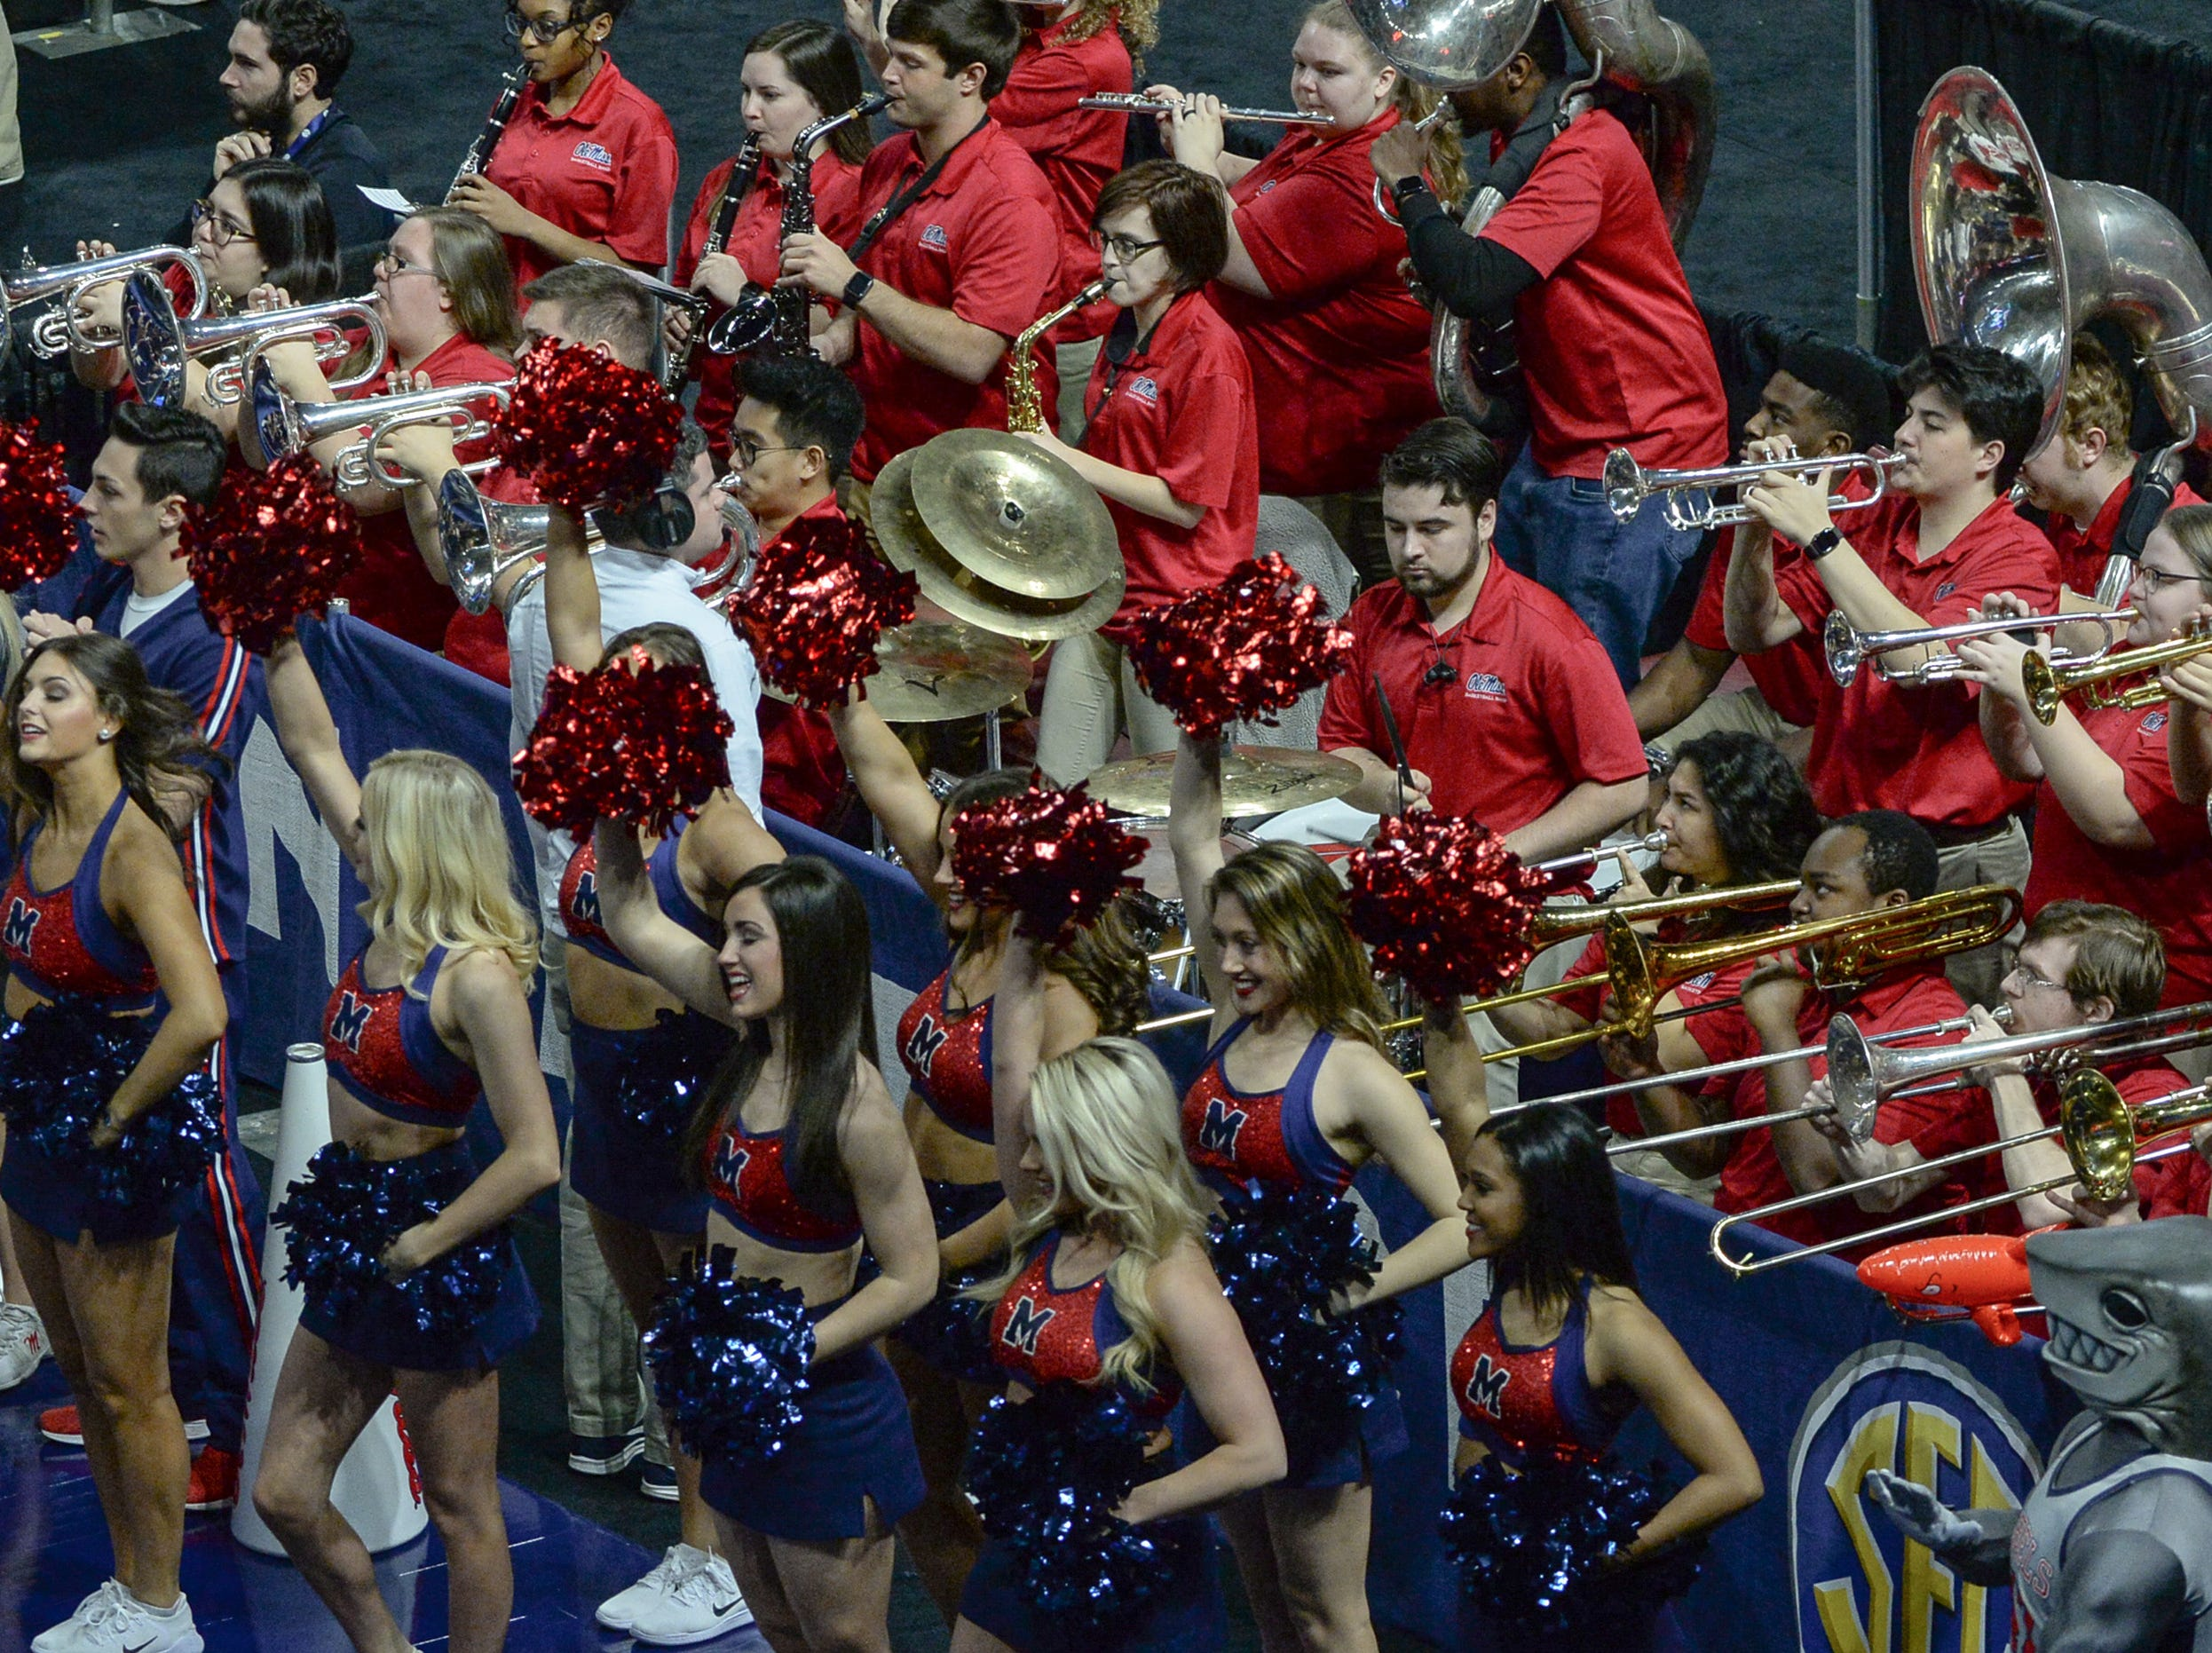 Ole Miss band and cheerleaders during the first quarter of the Southeastern Conference Women's Tournament game at Bon Secour Wellness Arena in Greenville Wednesday, March 6, 2019.